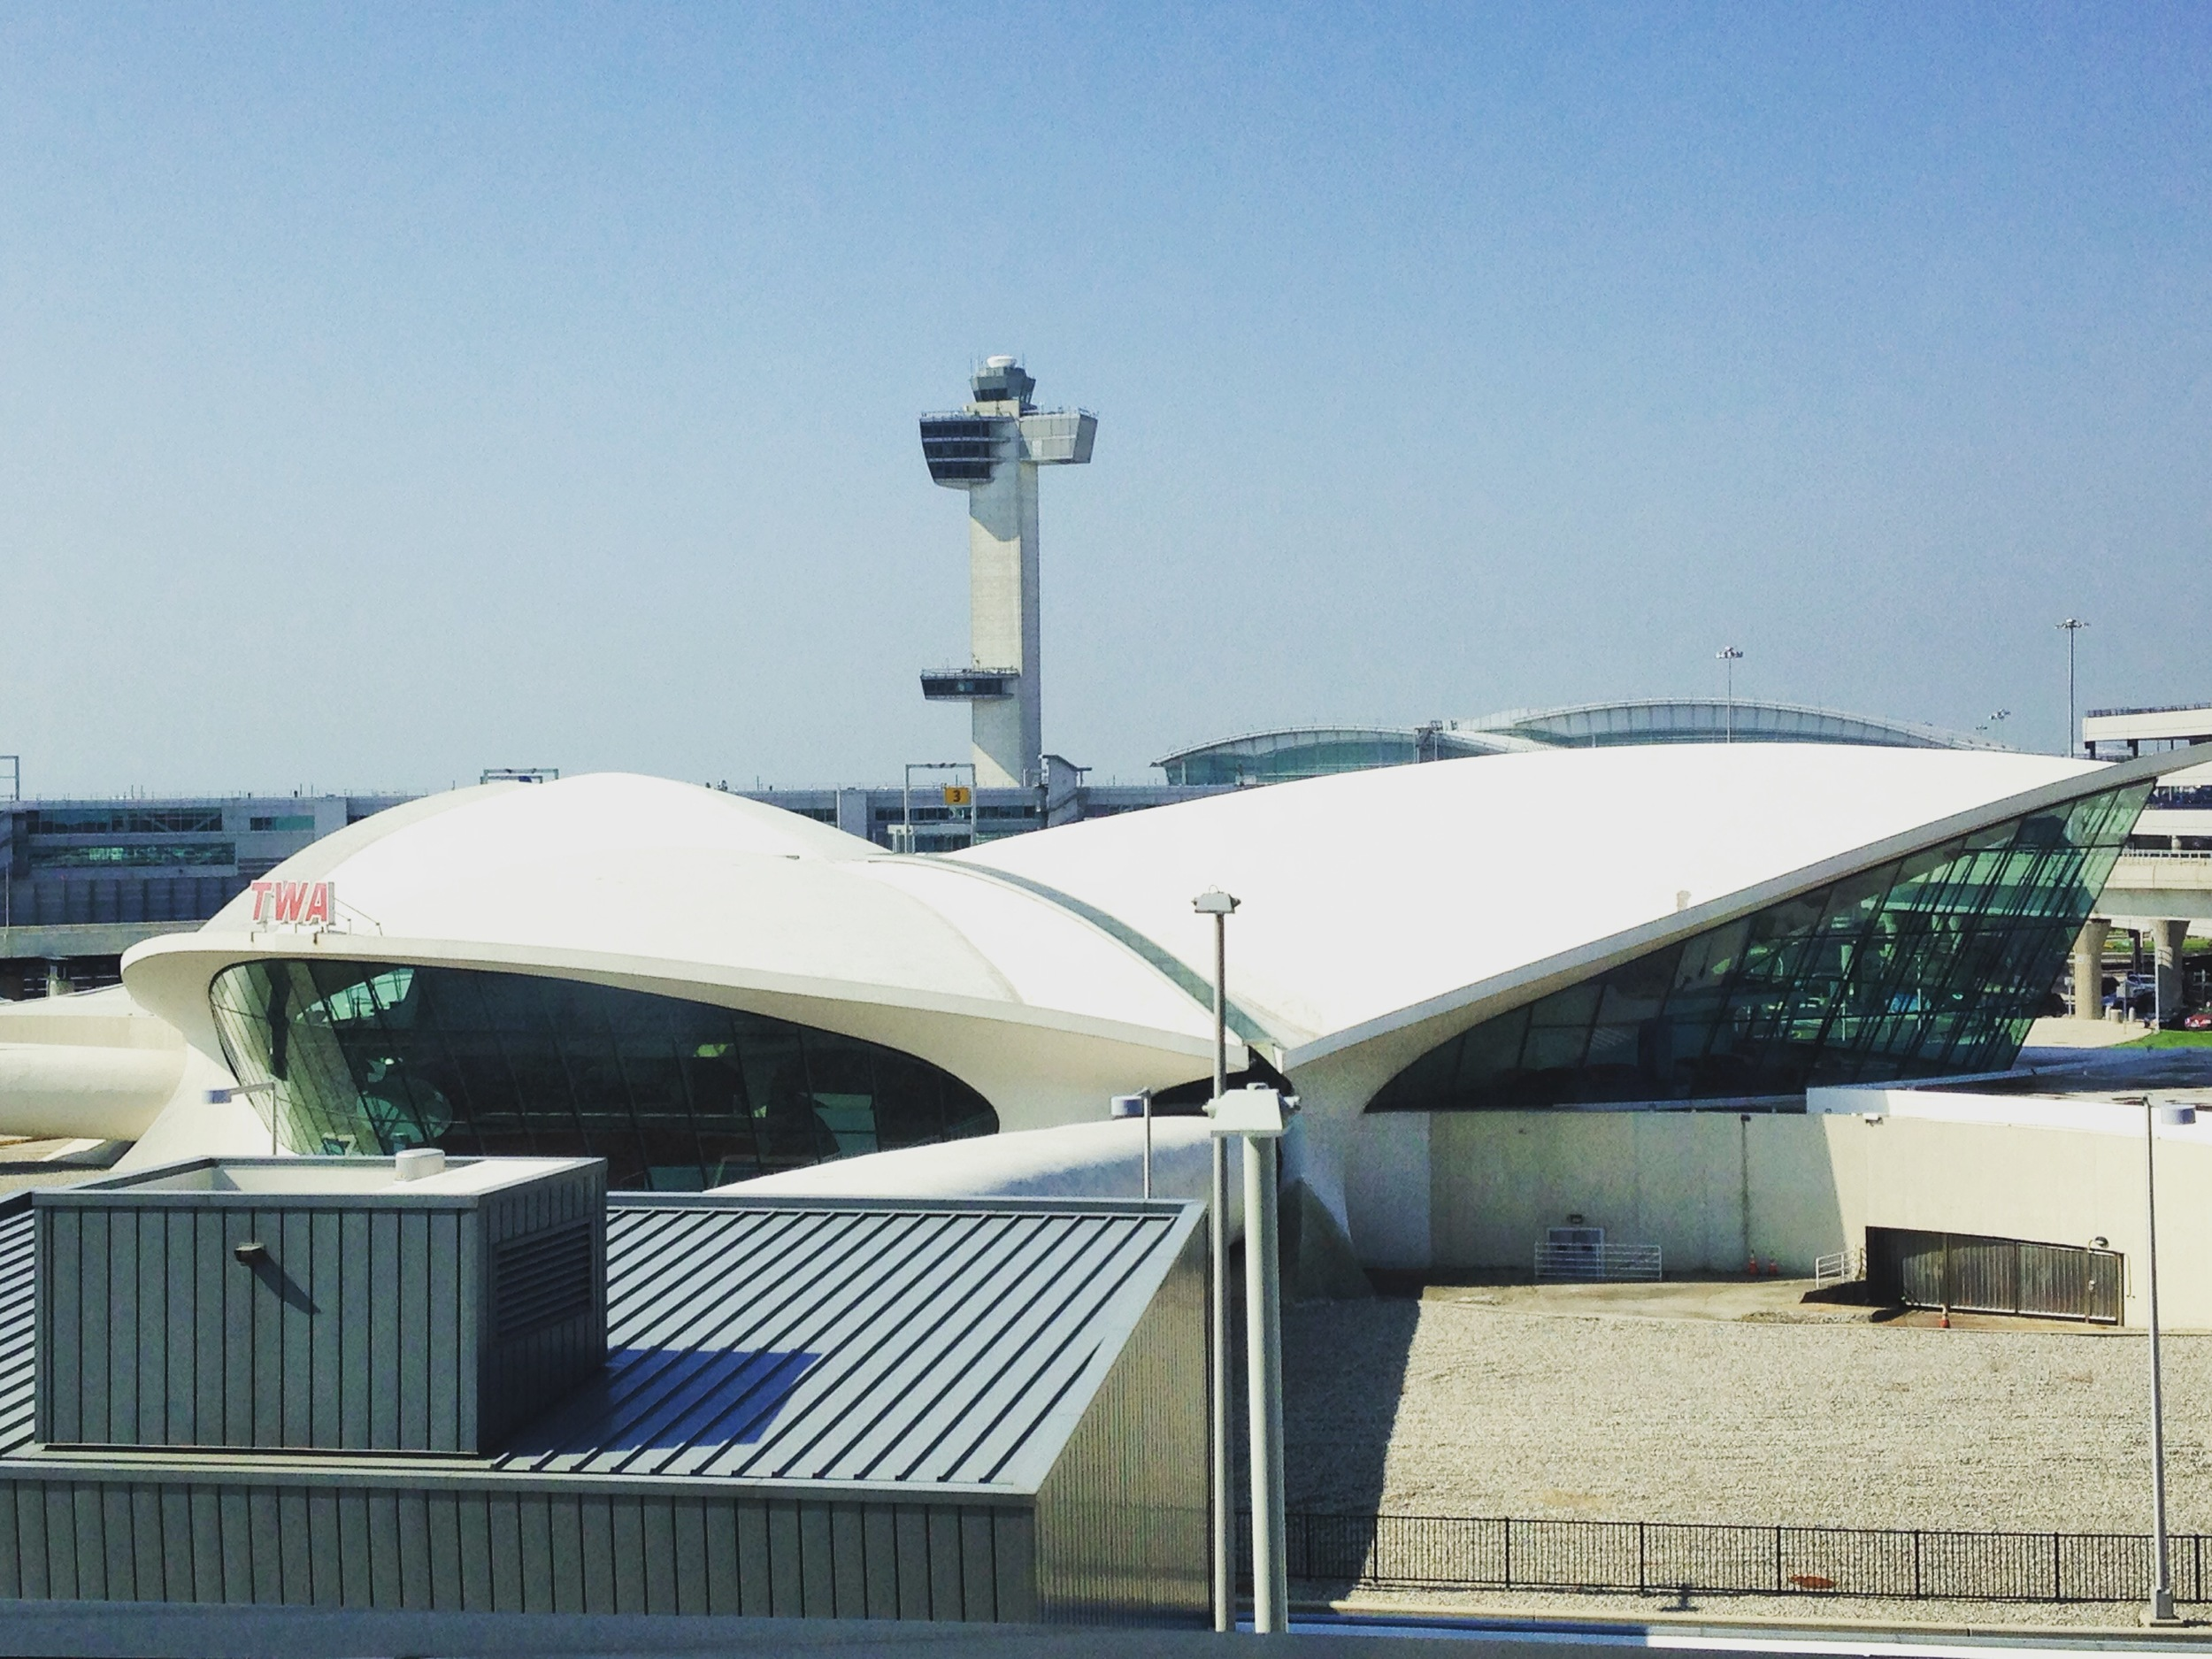 Space Age TWA building at JFK Airport